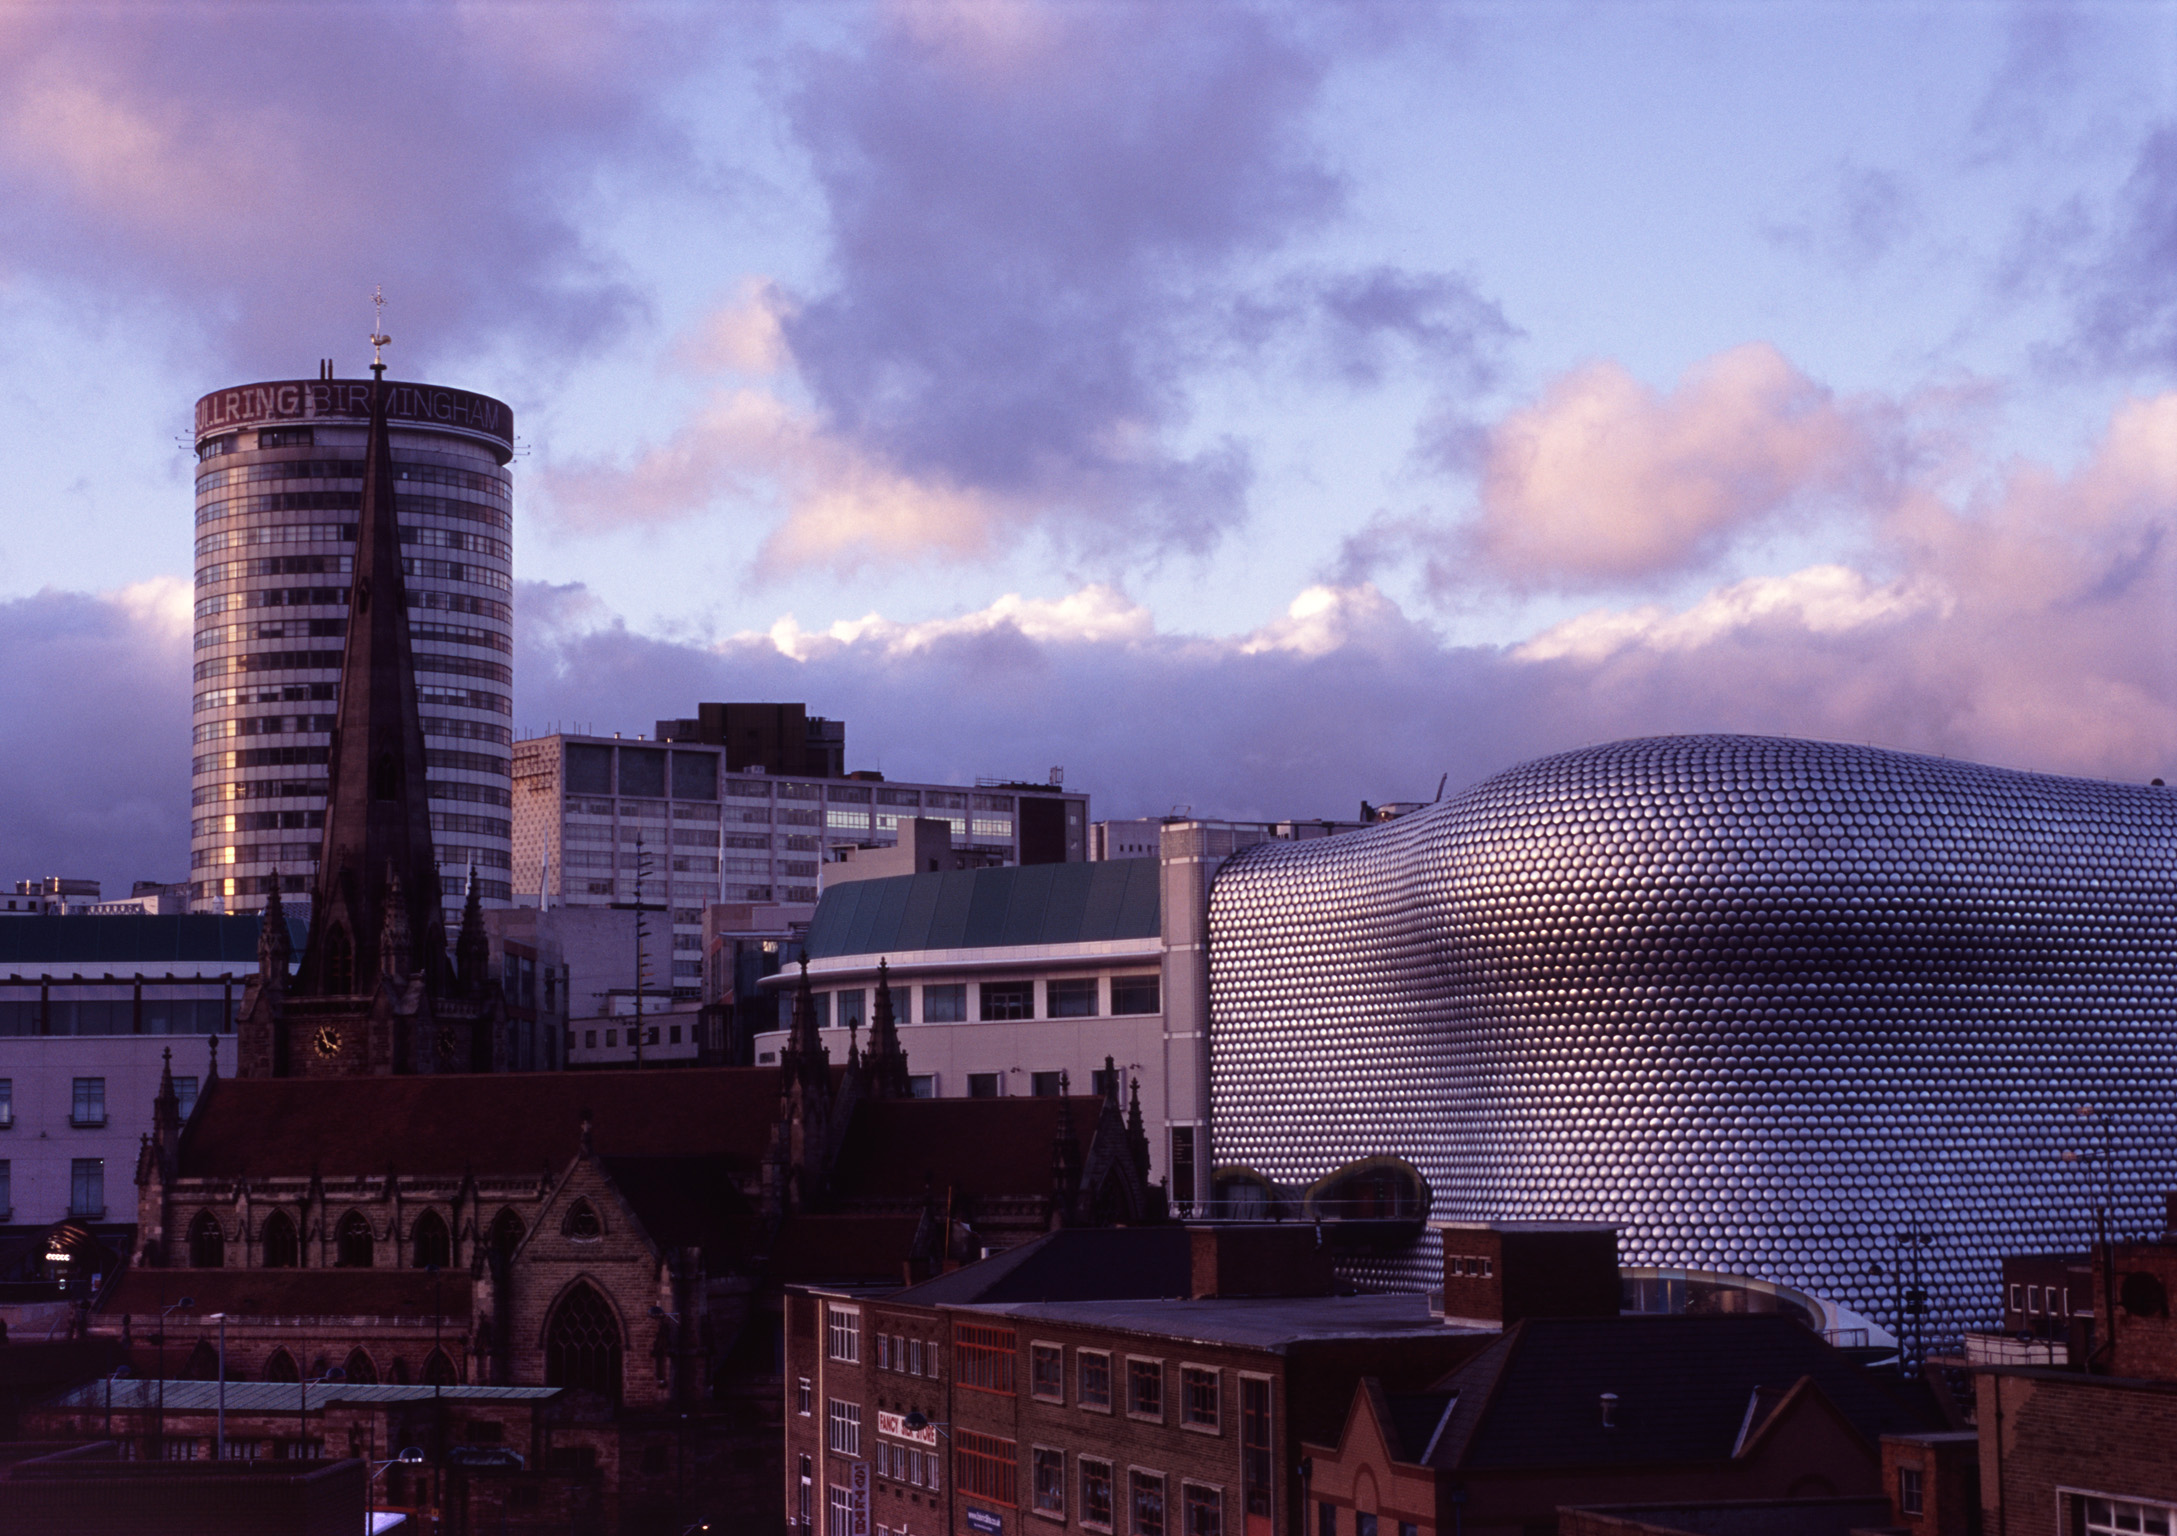 High Rise Rotunda and Commercial Bullring Buildings at Birmingham. Captured on Afternoon.